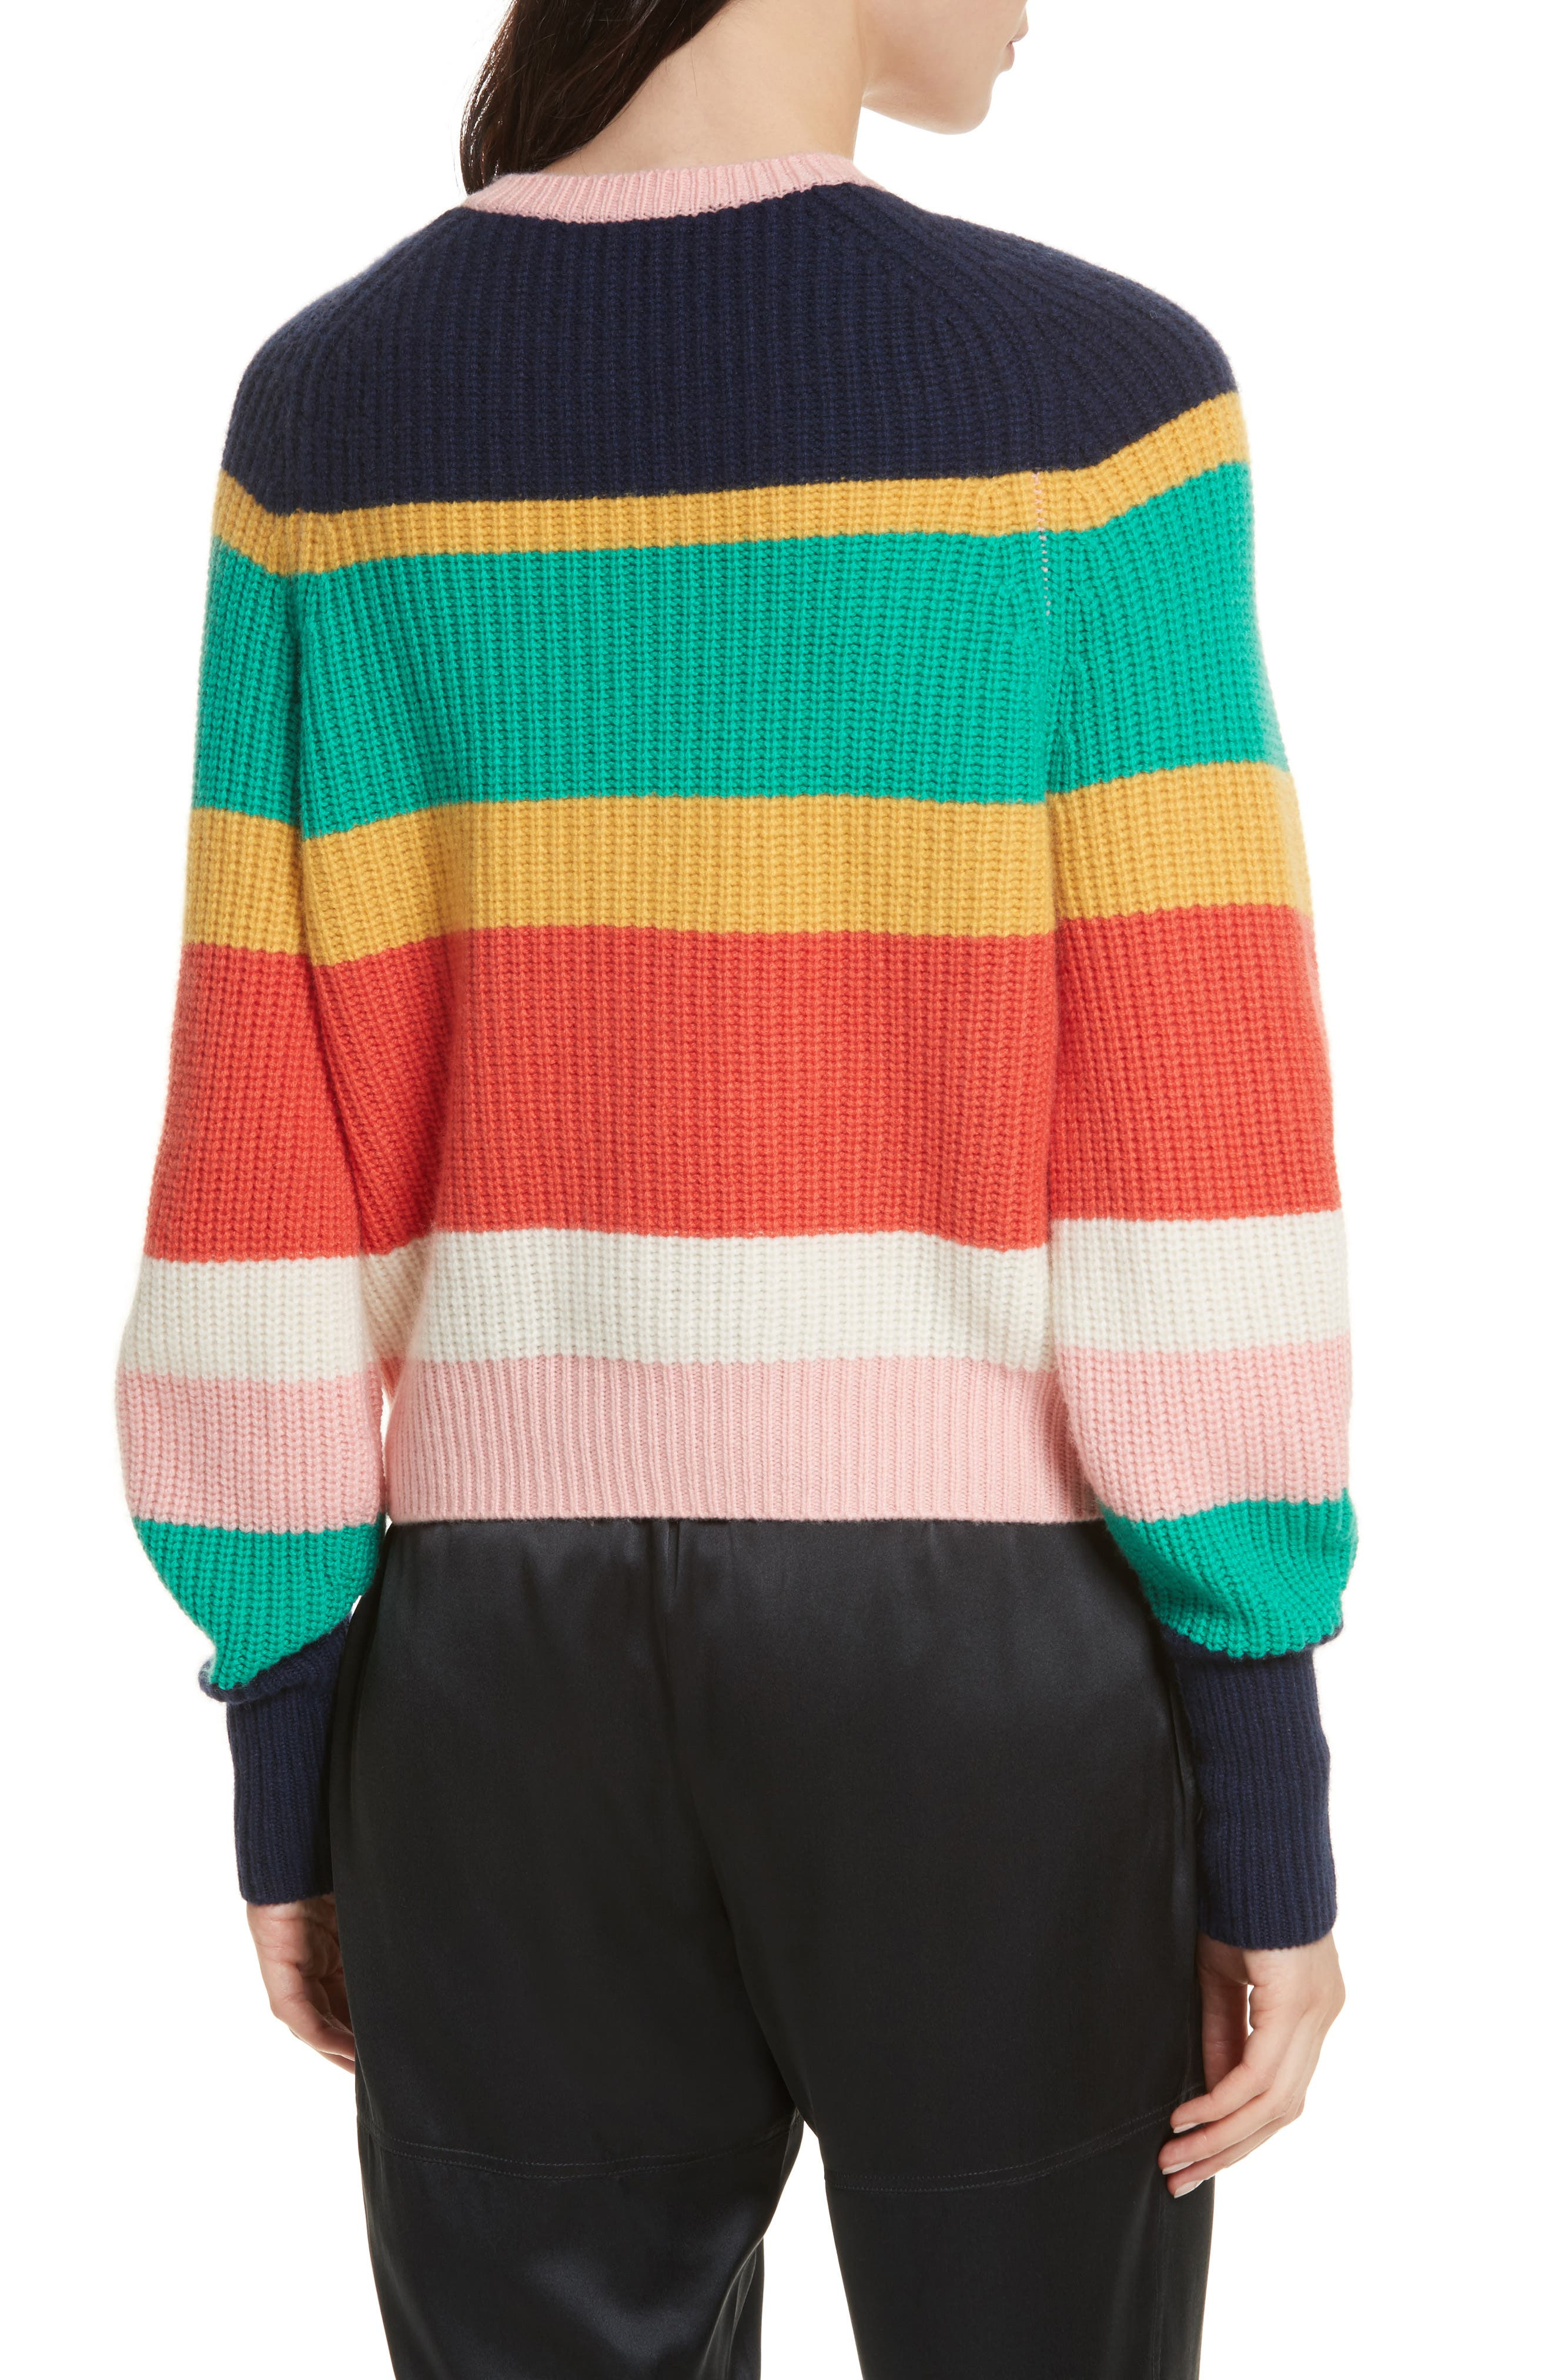 Haady Stripe Wool & Cashmere Sweater,                             Alternate thumbnail 2, color,                             475